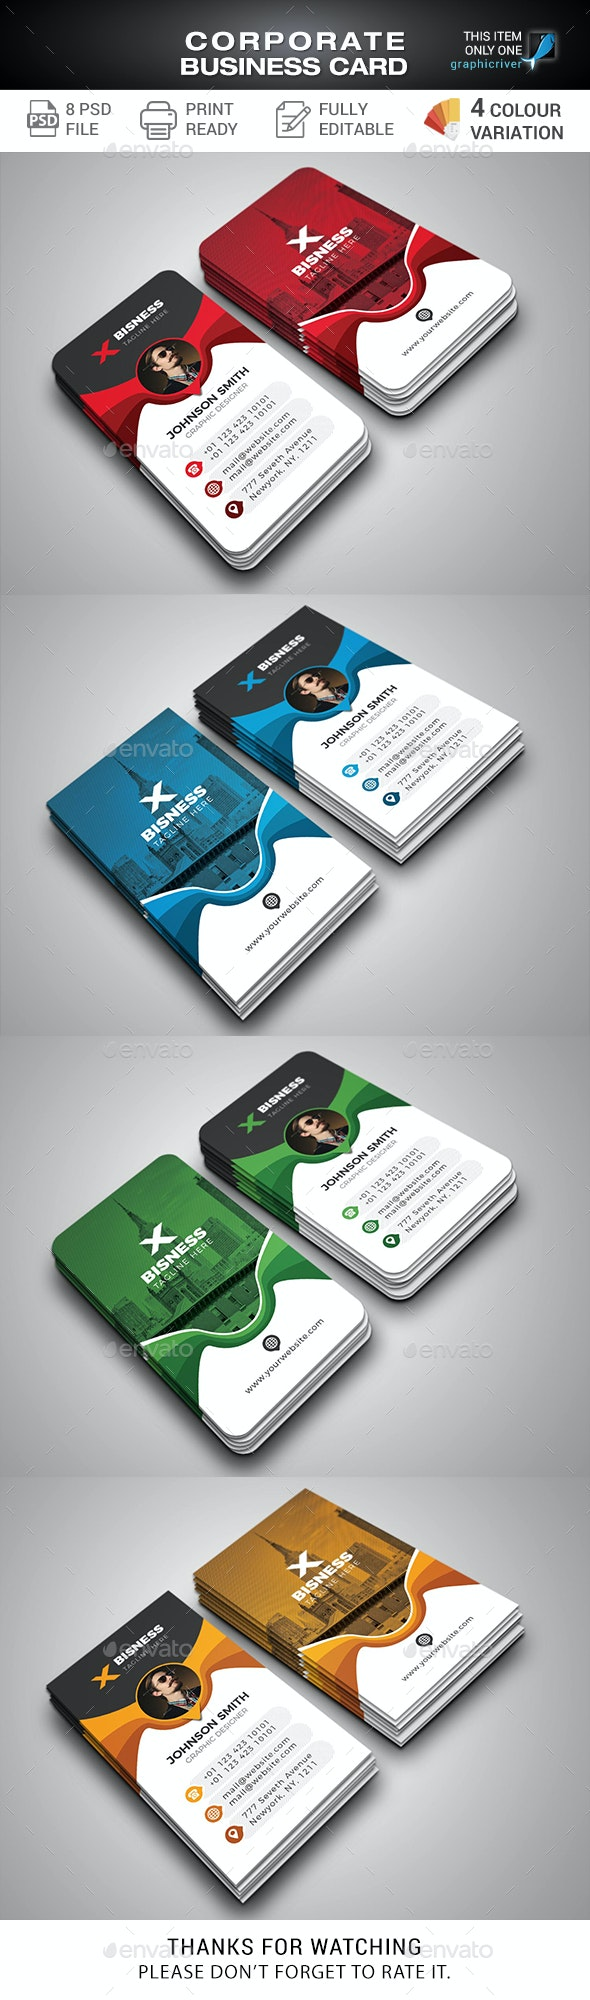 Business Cards - Corporate Business Cards